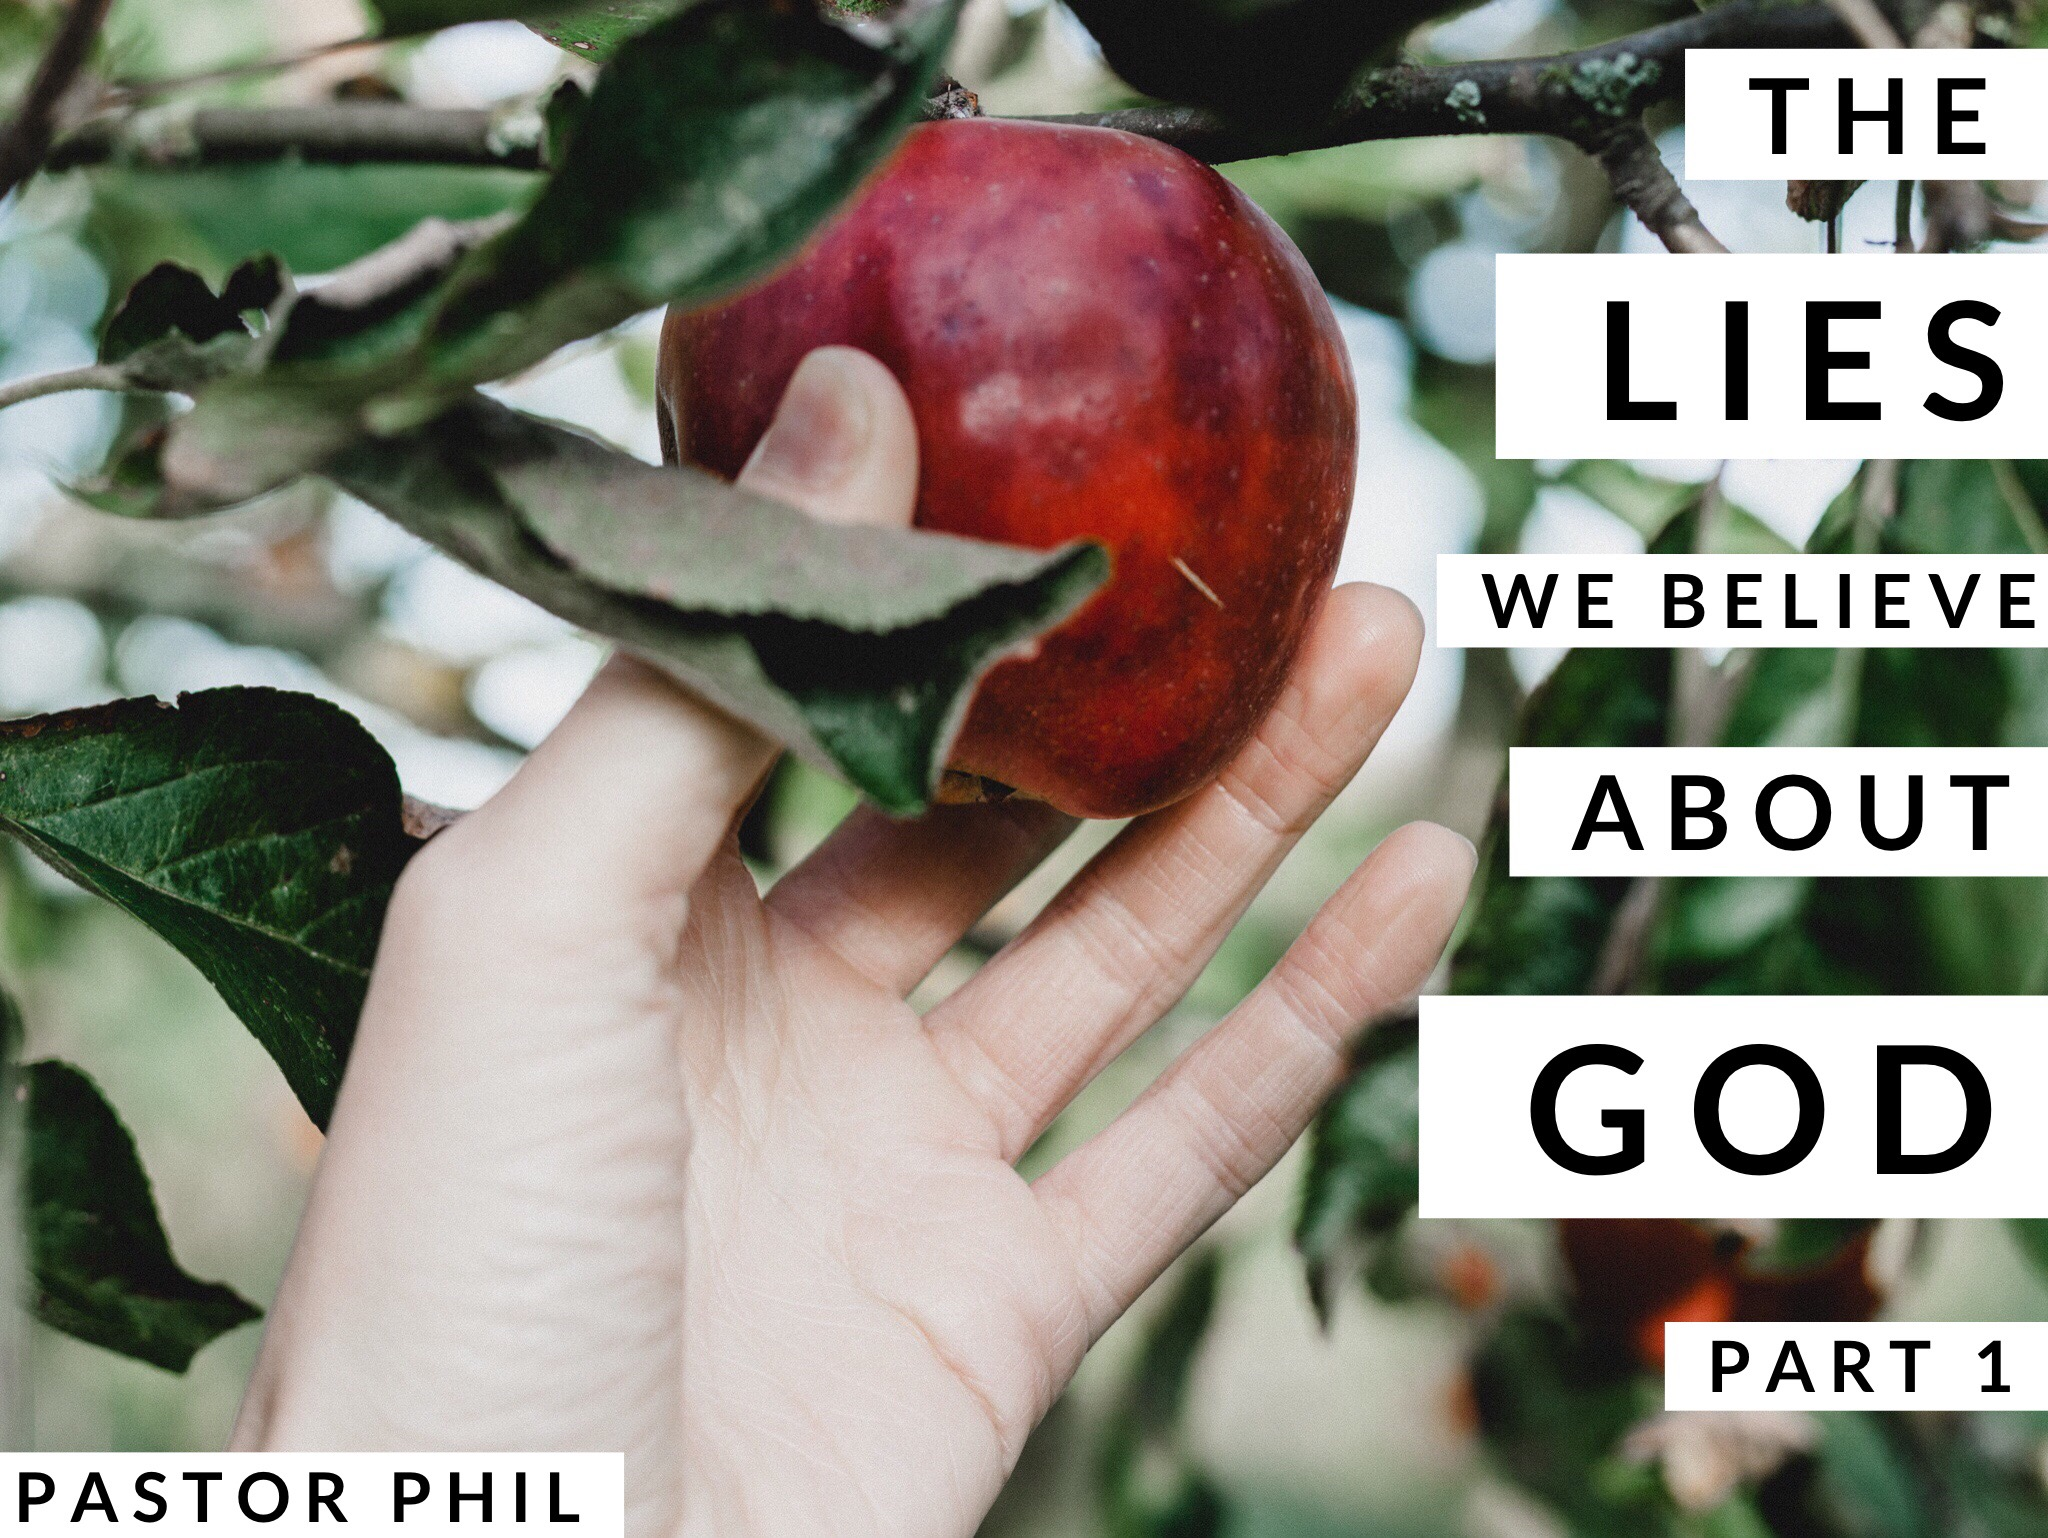 The Lies We Believe about God Pt 1